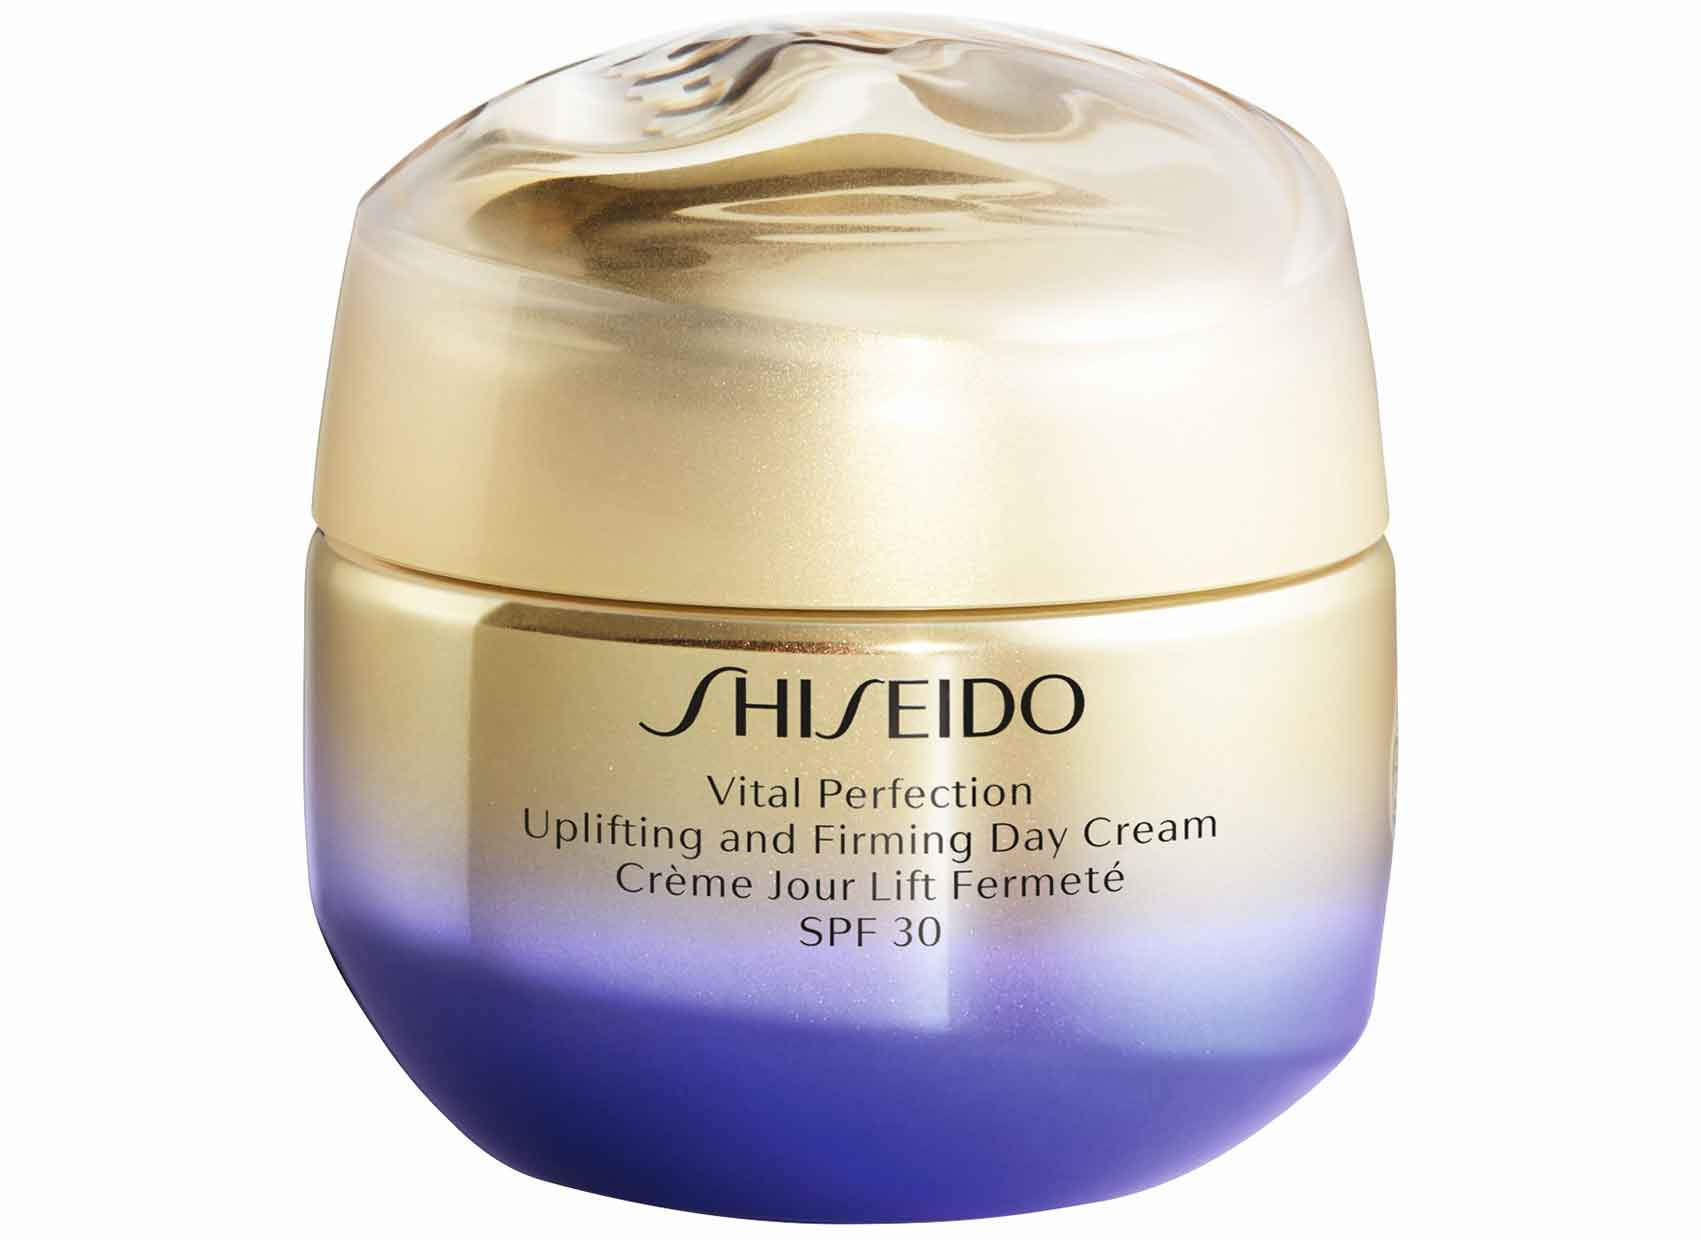 Shiseido-Vital-Perfection-Uplifiting-and-Firming-Day-Cream-ביוטי